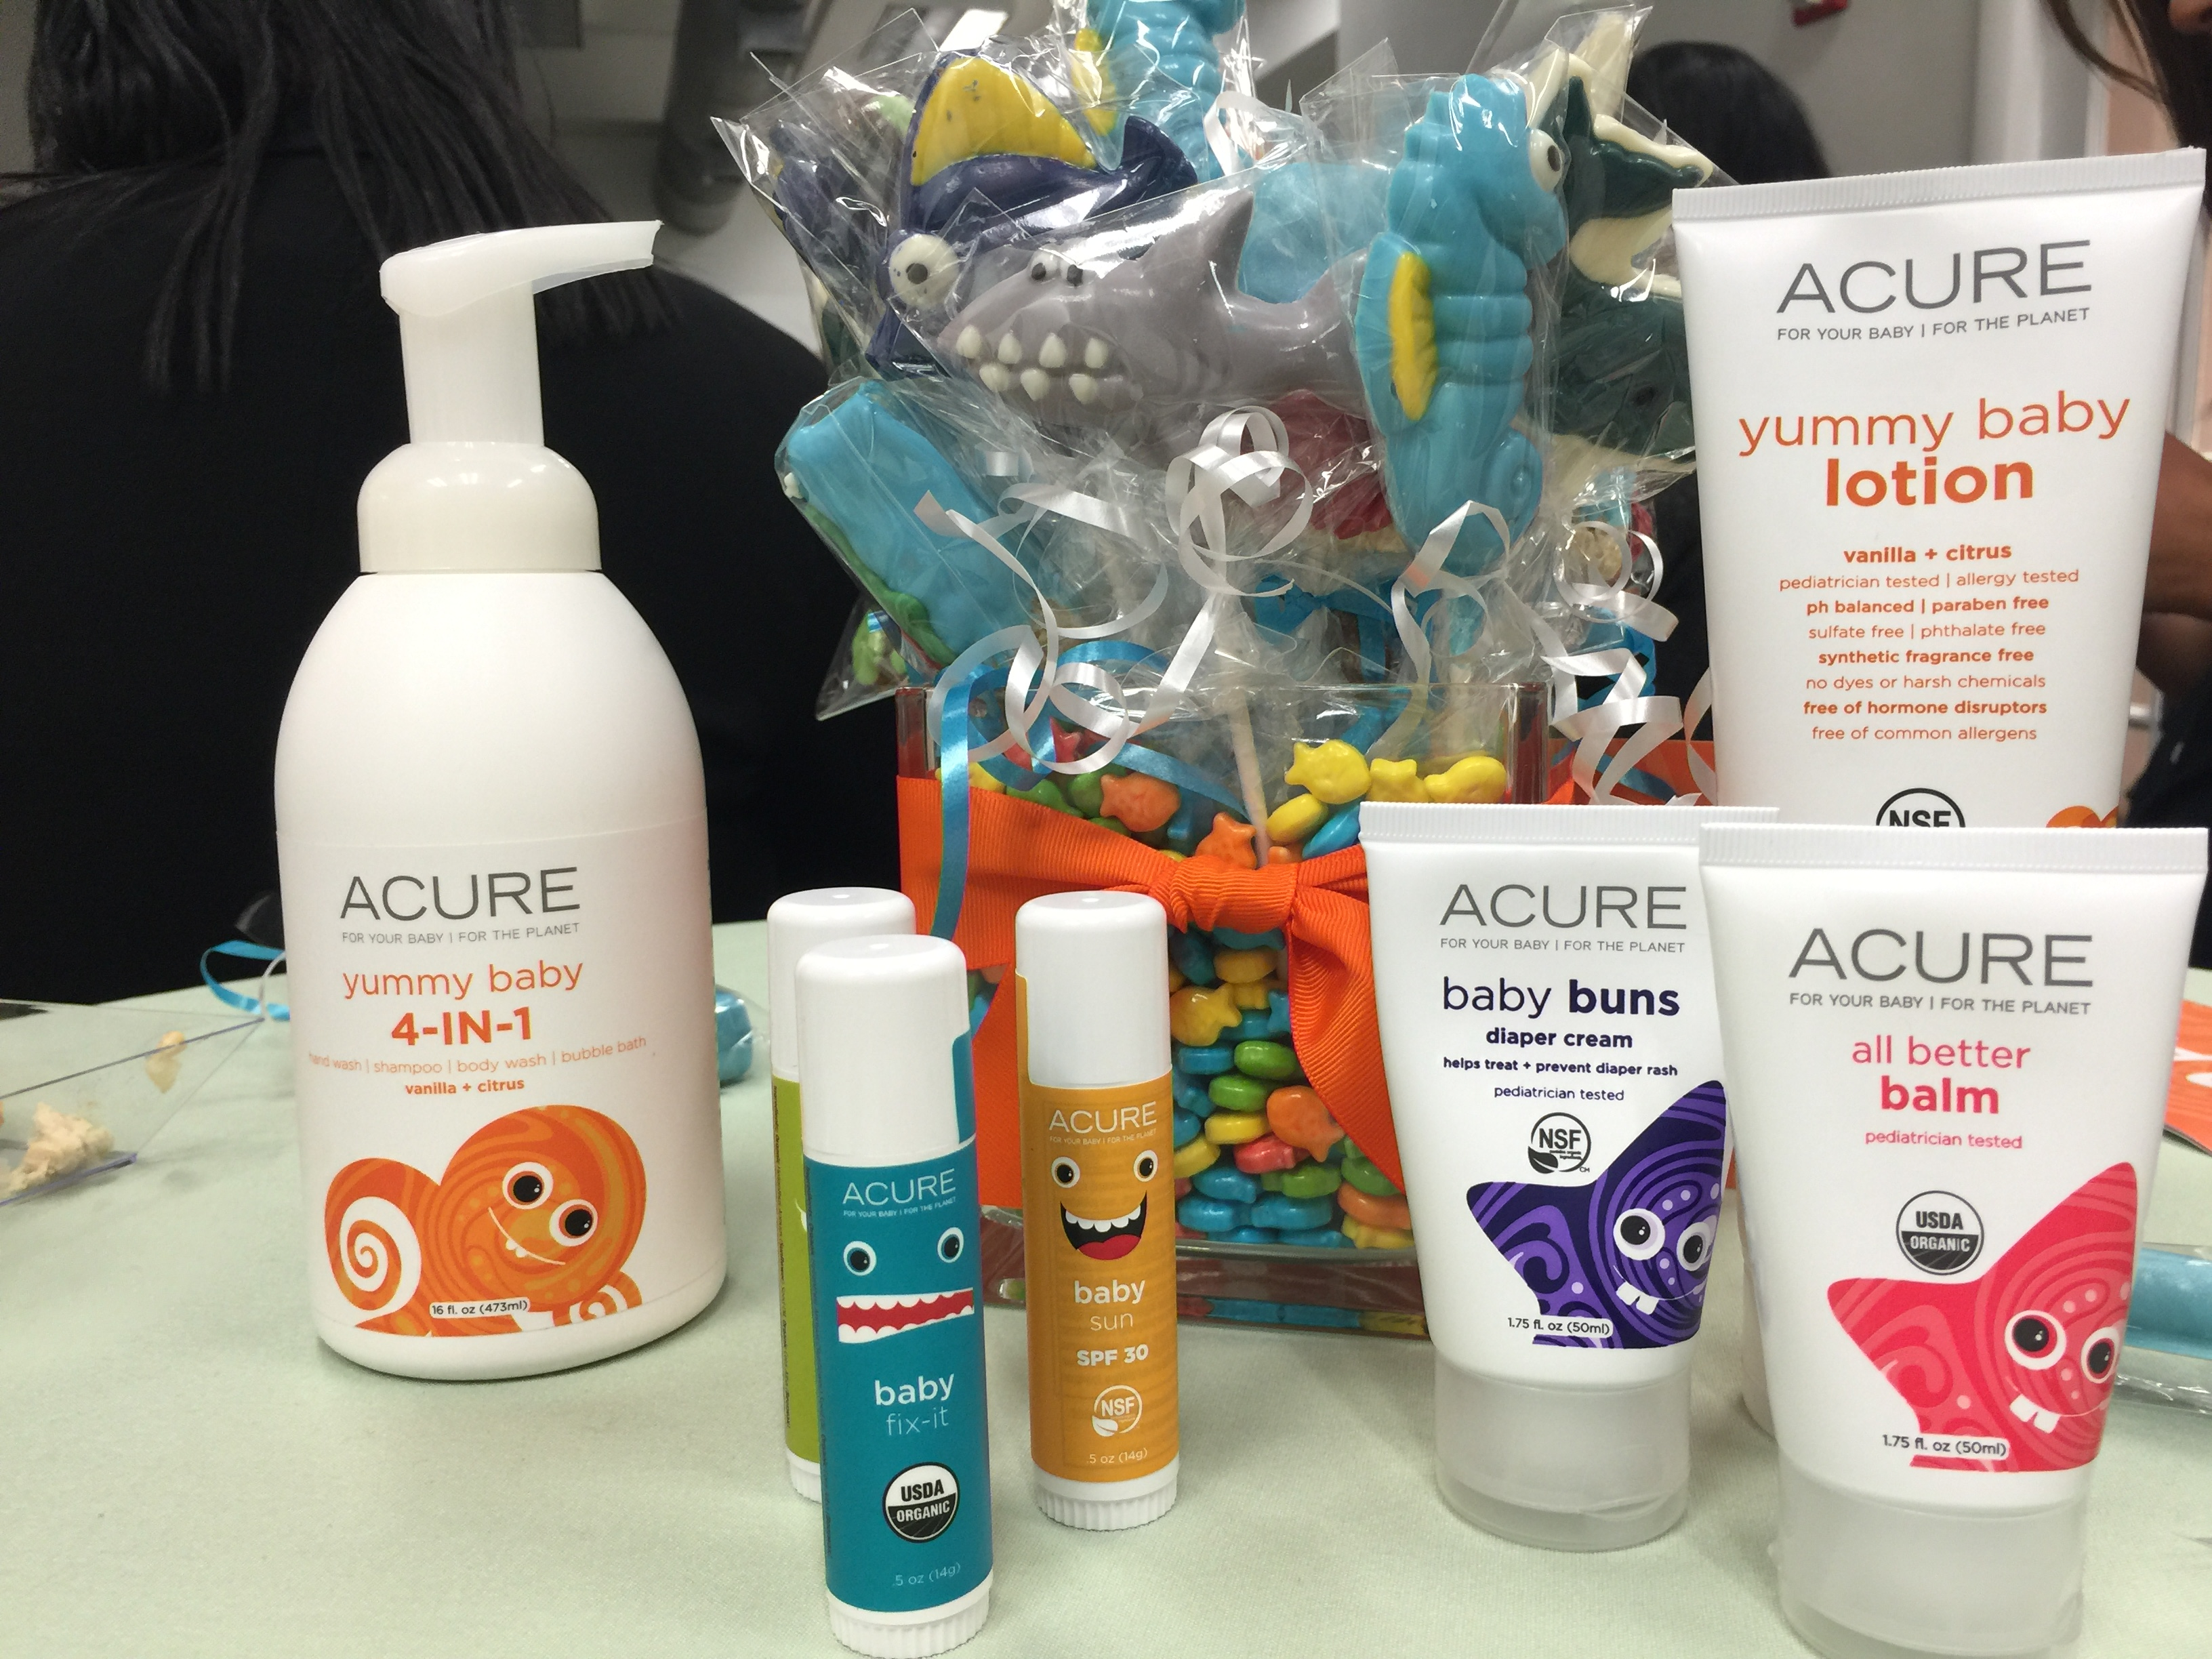 Acure Organics Launches New Baby Line - And You'll Want to